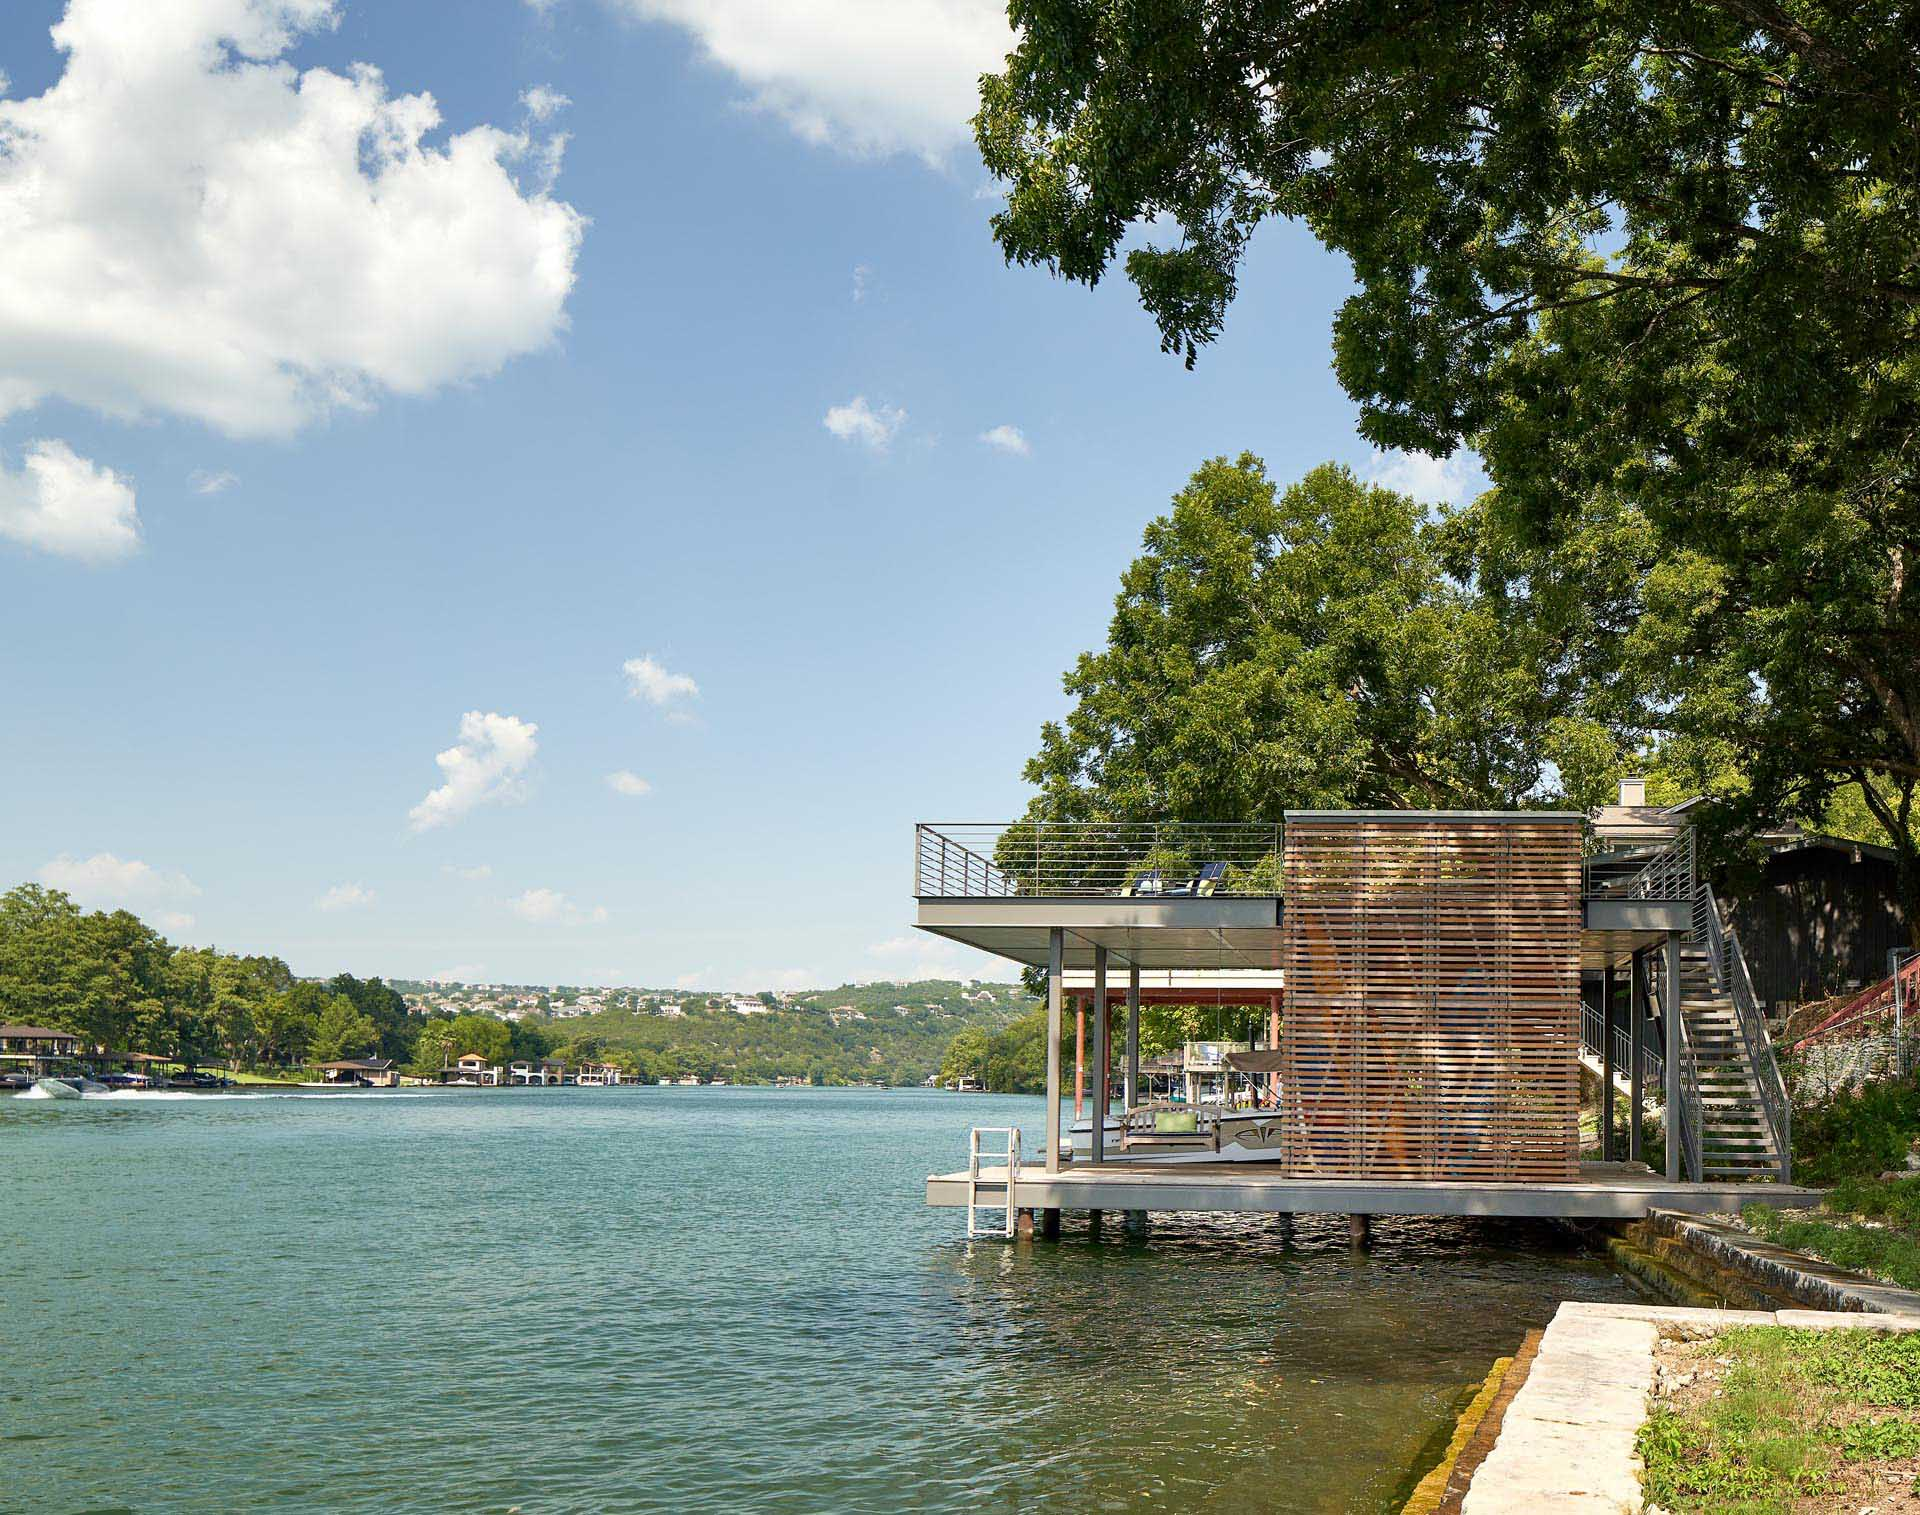 A two level boat dock provides an outdoor lounge space perched above the water.